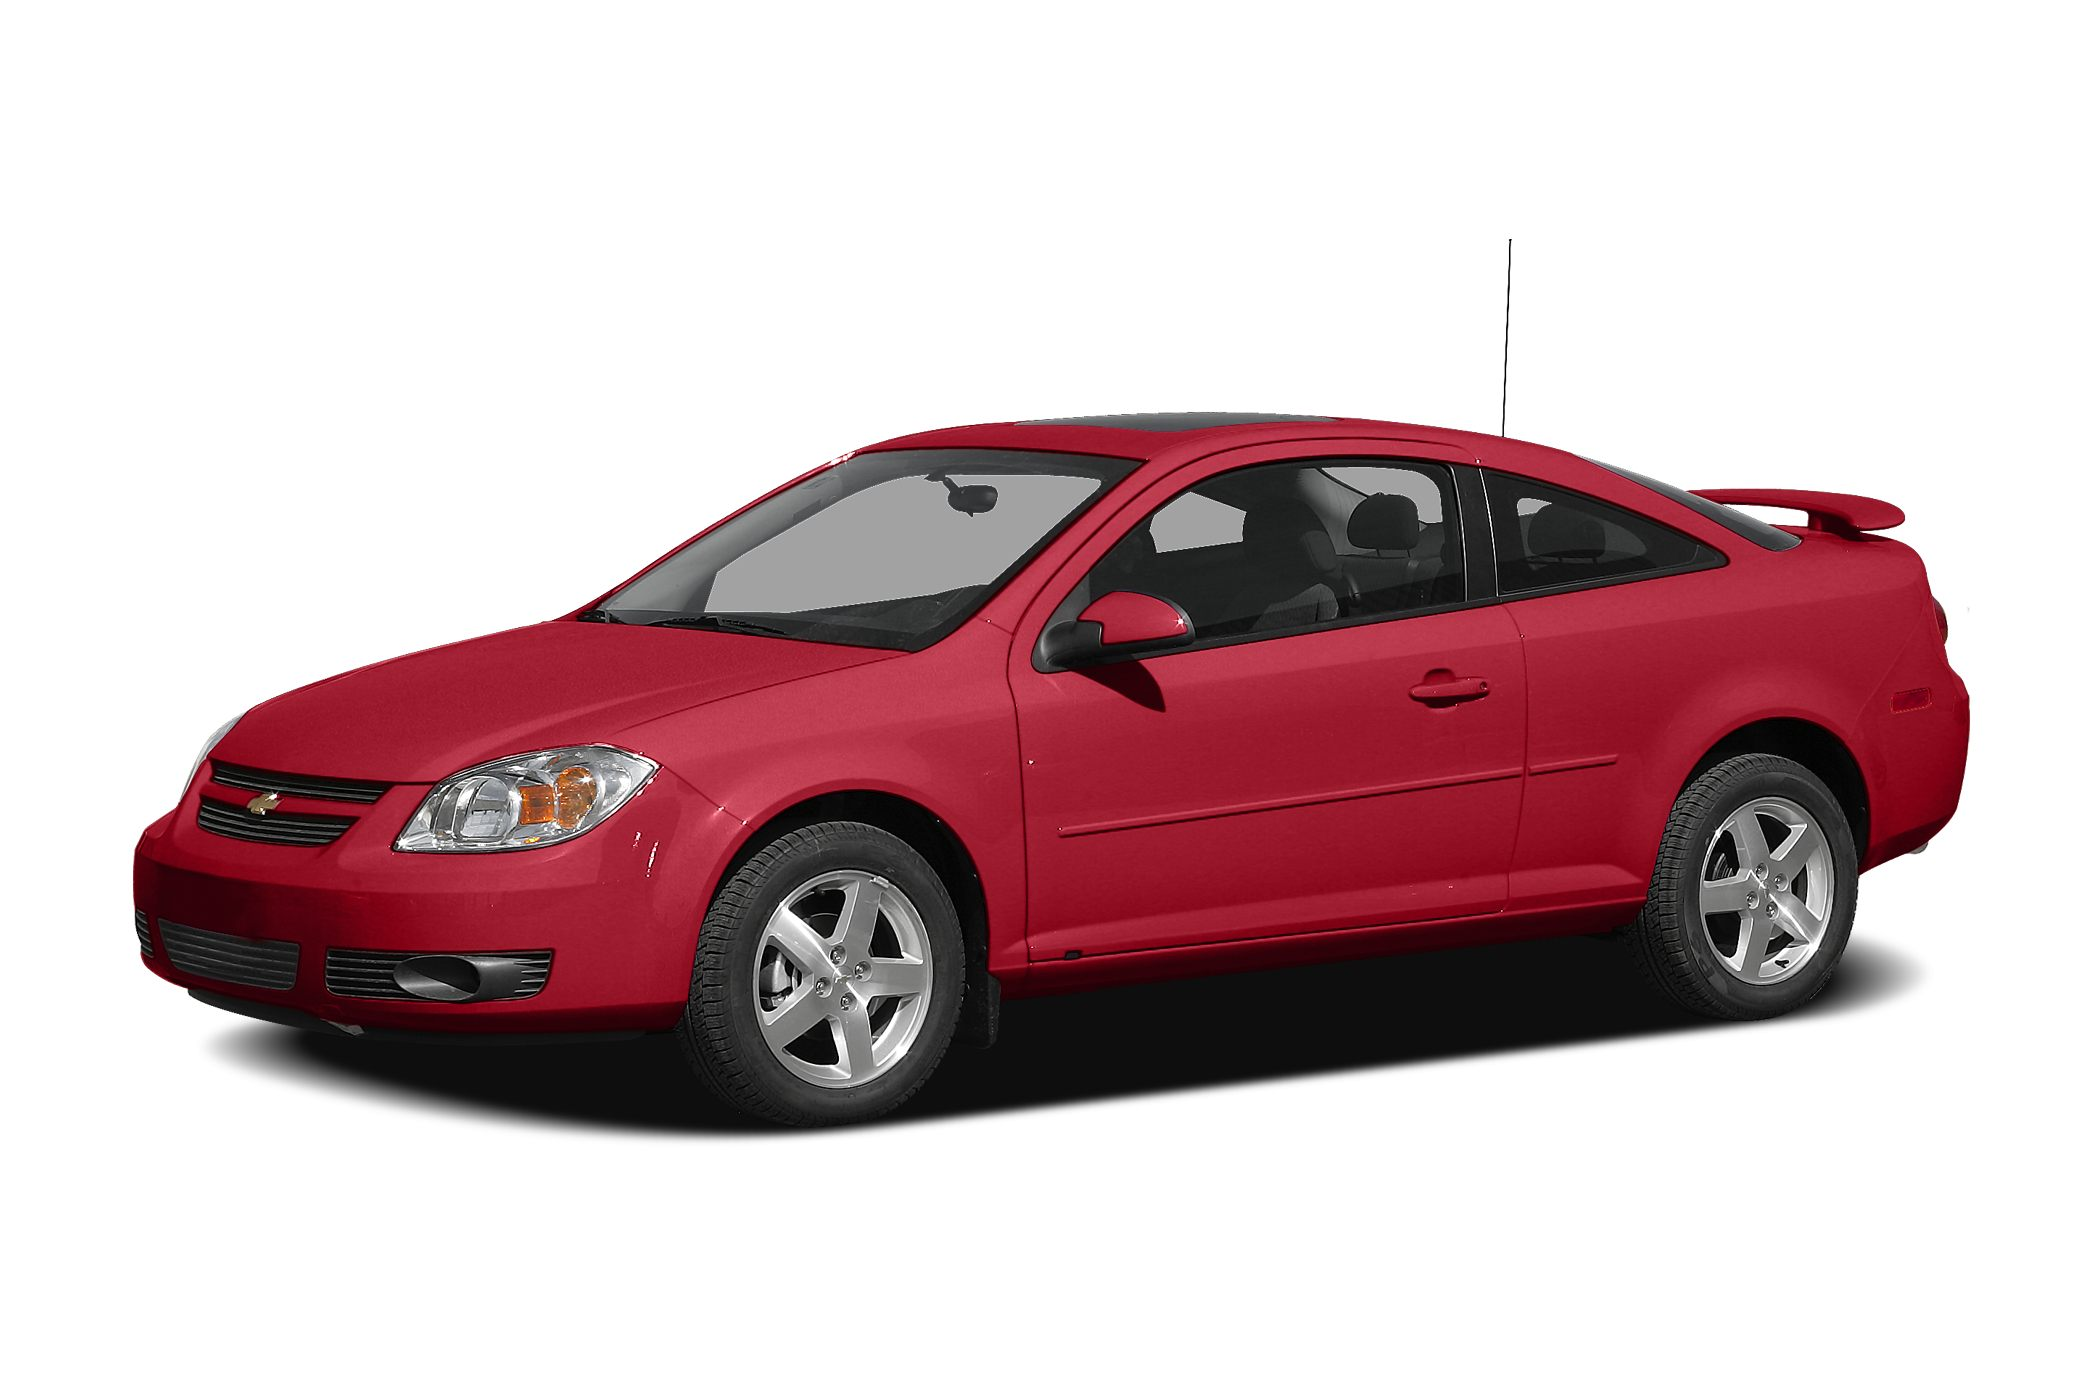 2008 Chevrolet Cobalt LS Sedan for sale in Kennewick for $6,000 with 148,740 miles.